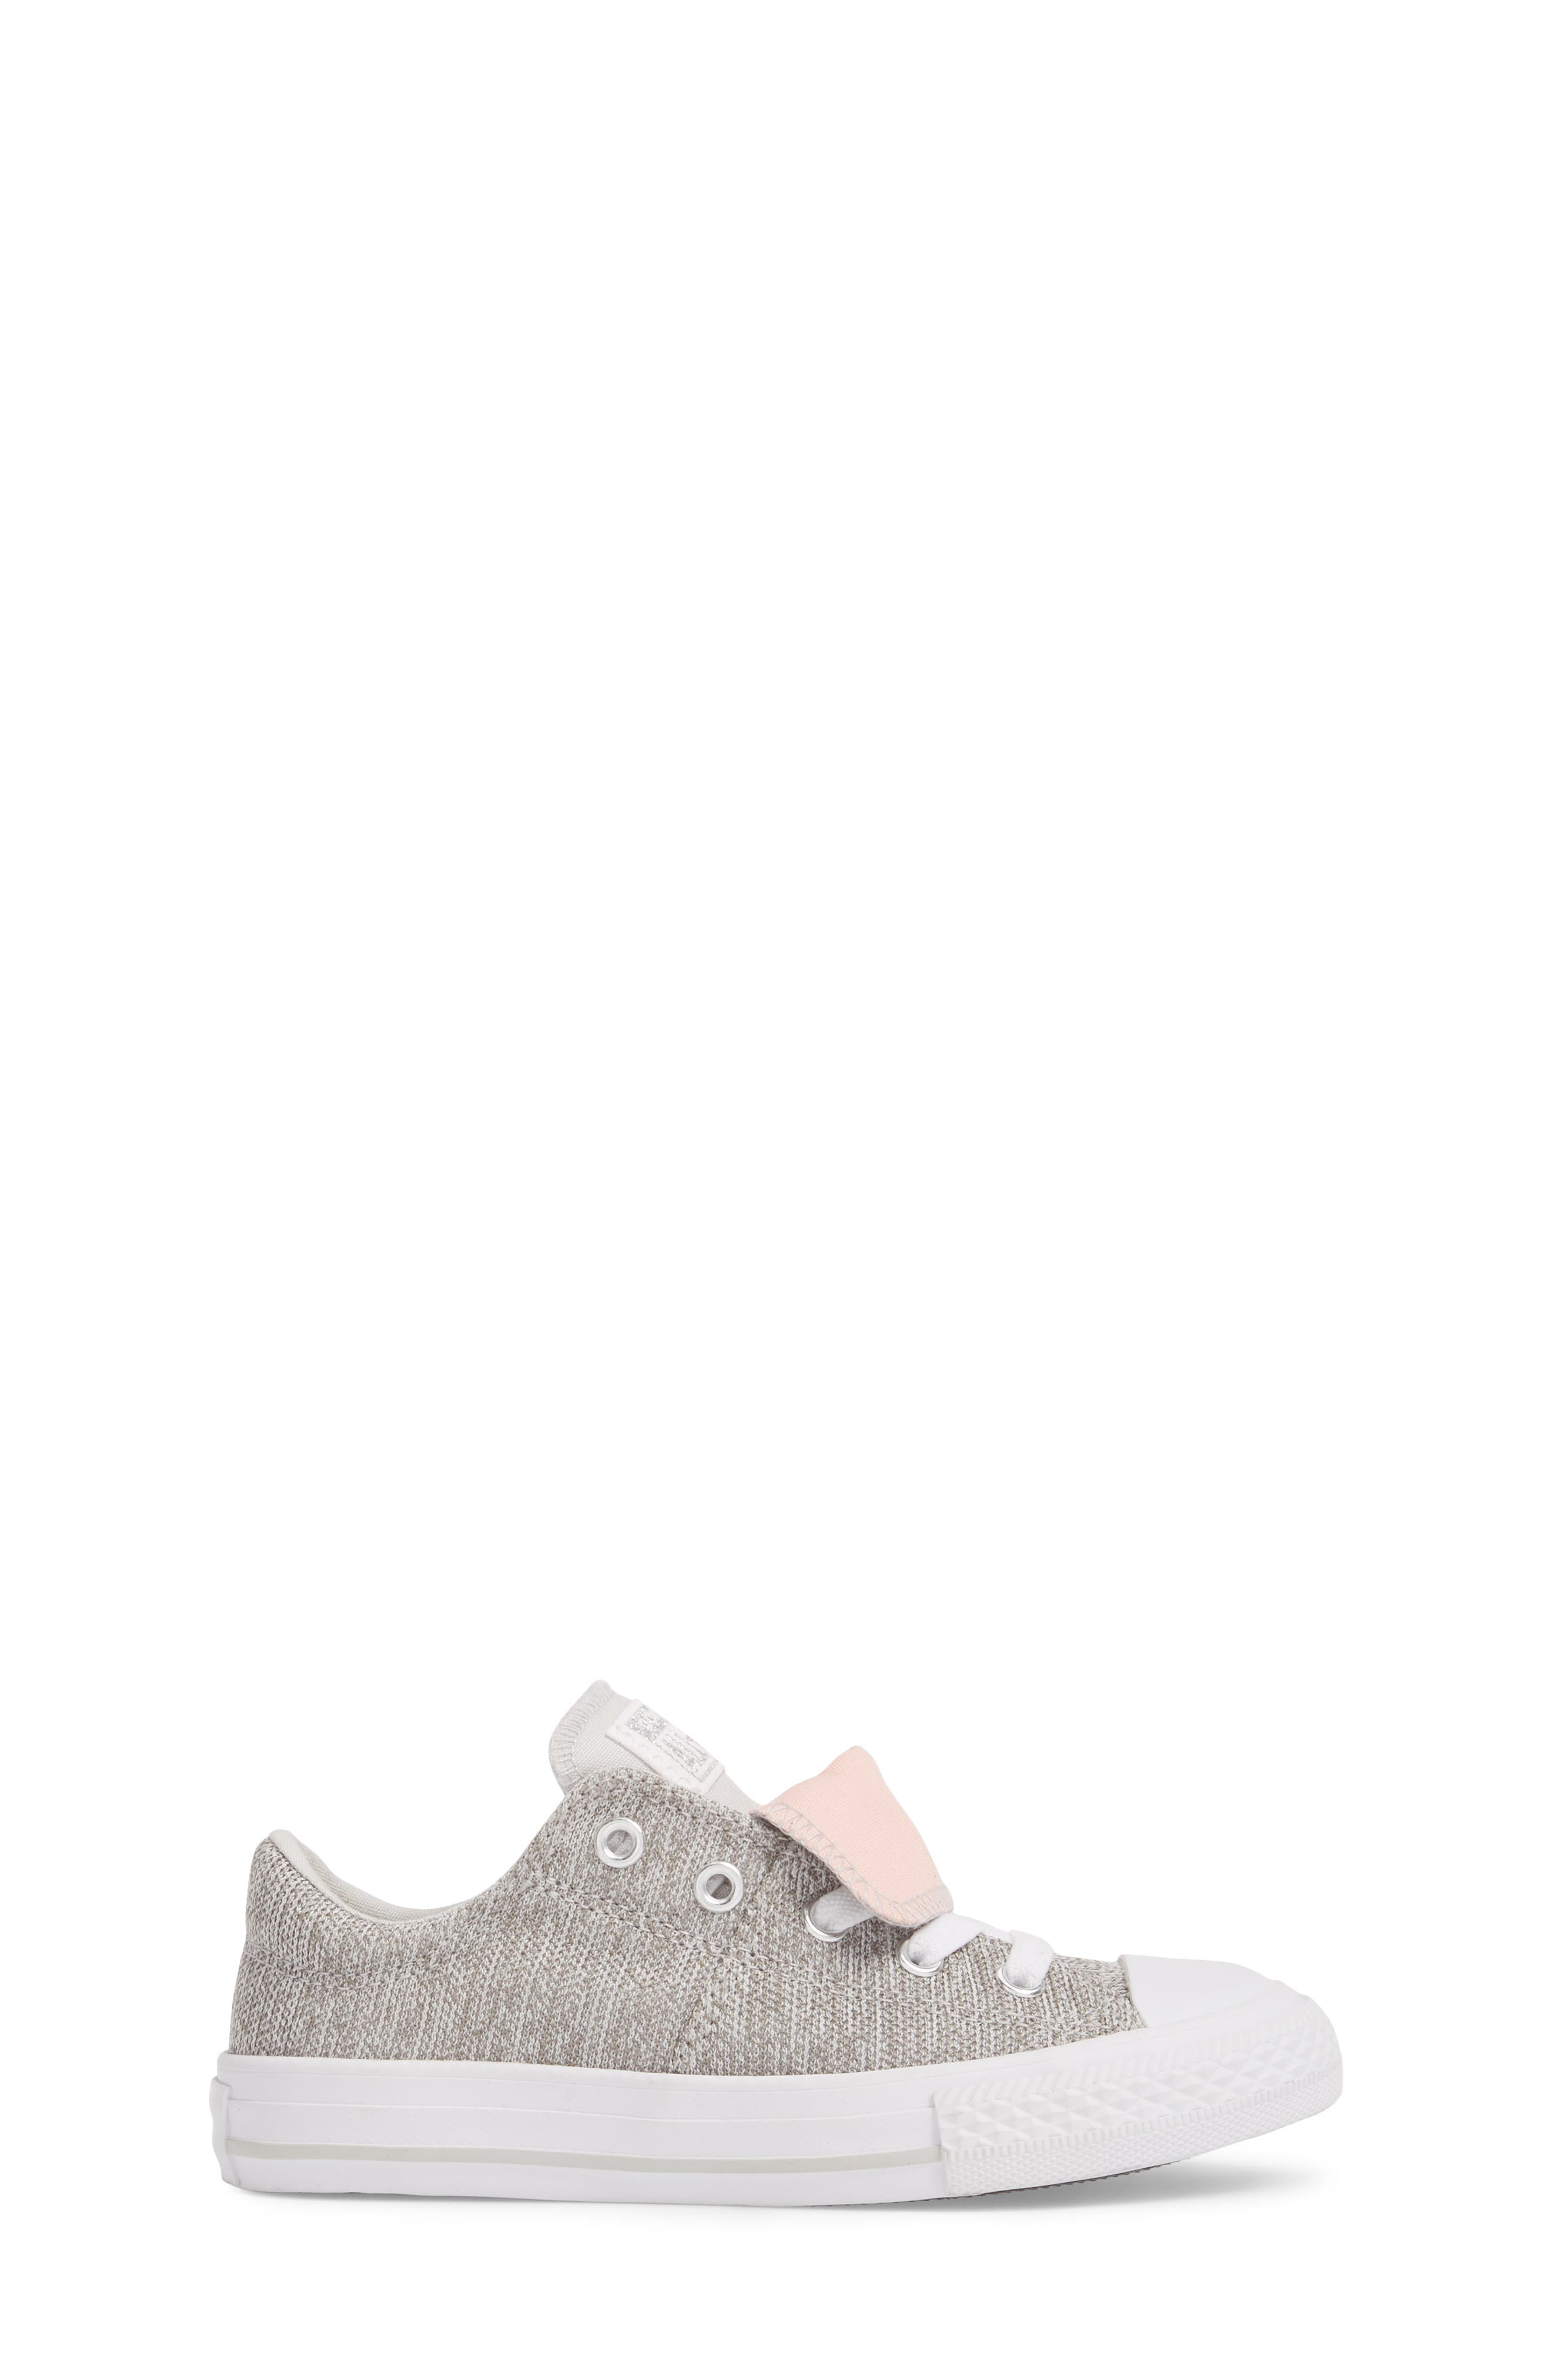 Chuck Taylor<sup>®</sup> All Star<sup>®</sup> Maddie Double Tongue Sneaker,                             Alternate thumbnail 3, color,                             050